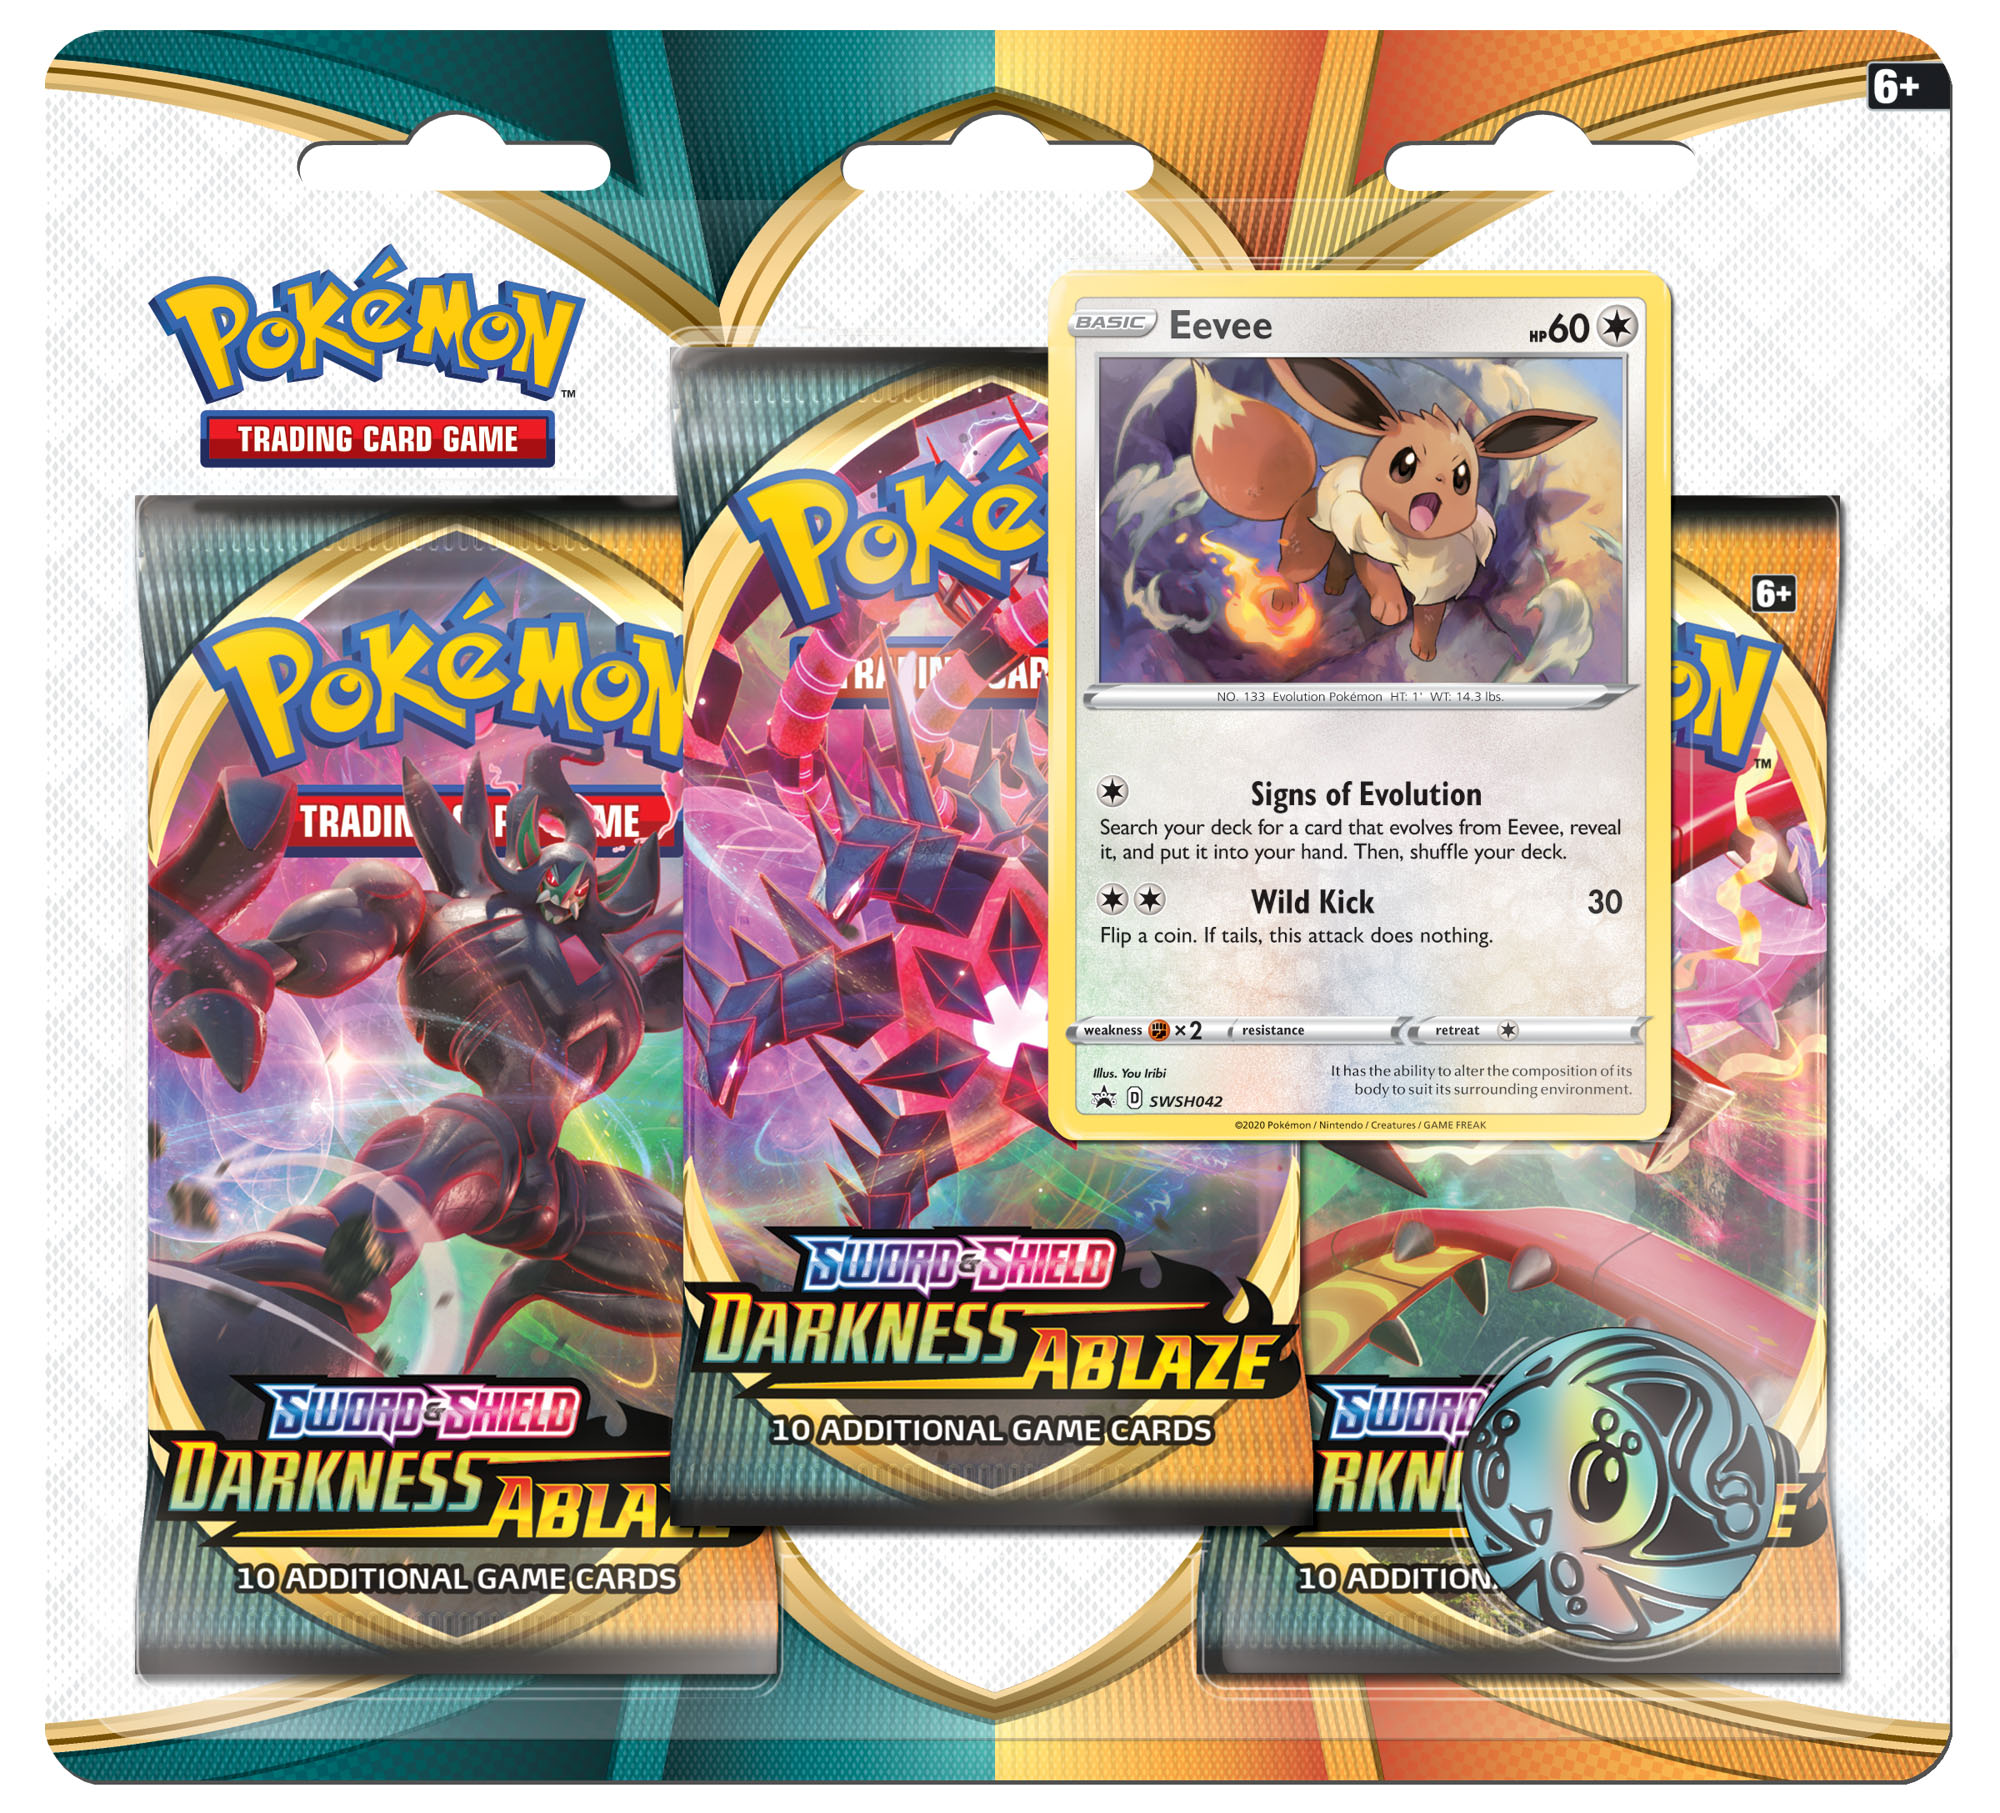 Sword & Shield - Darkness Ablaze 3 Pack Blister - Eevee